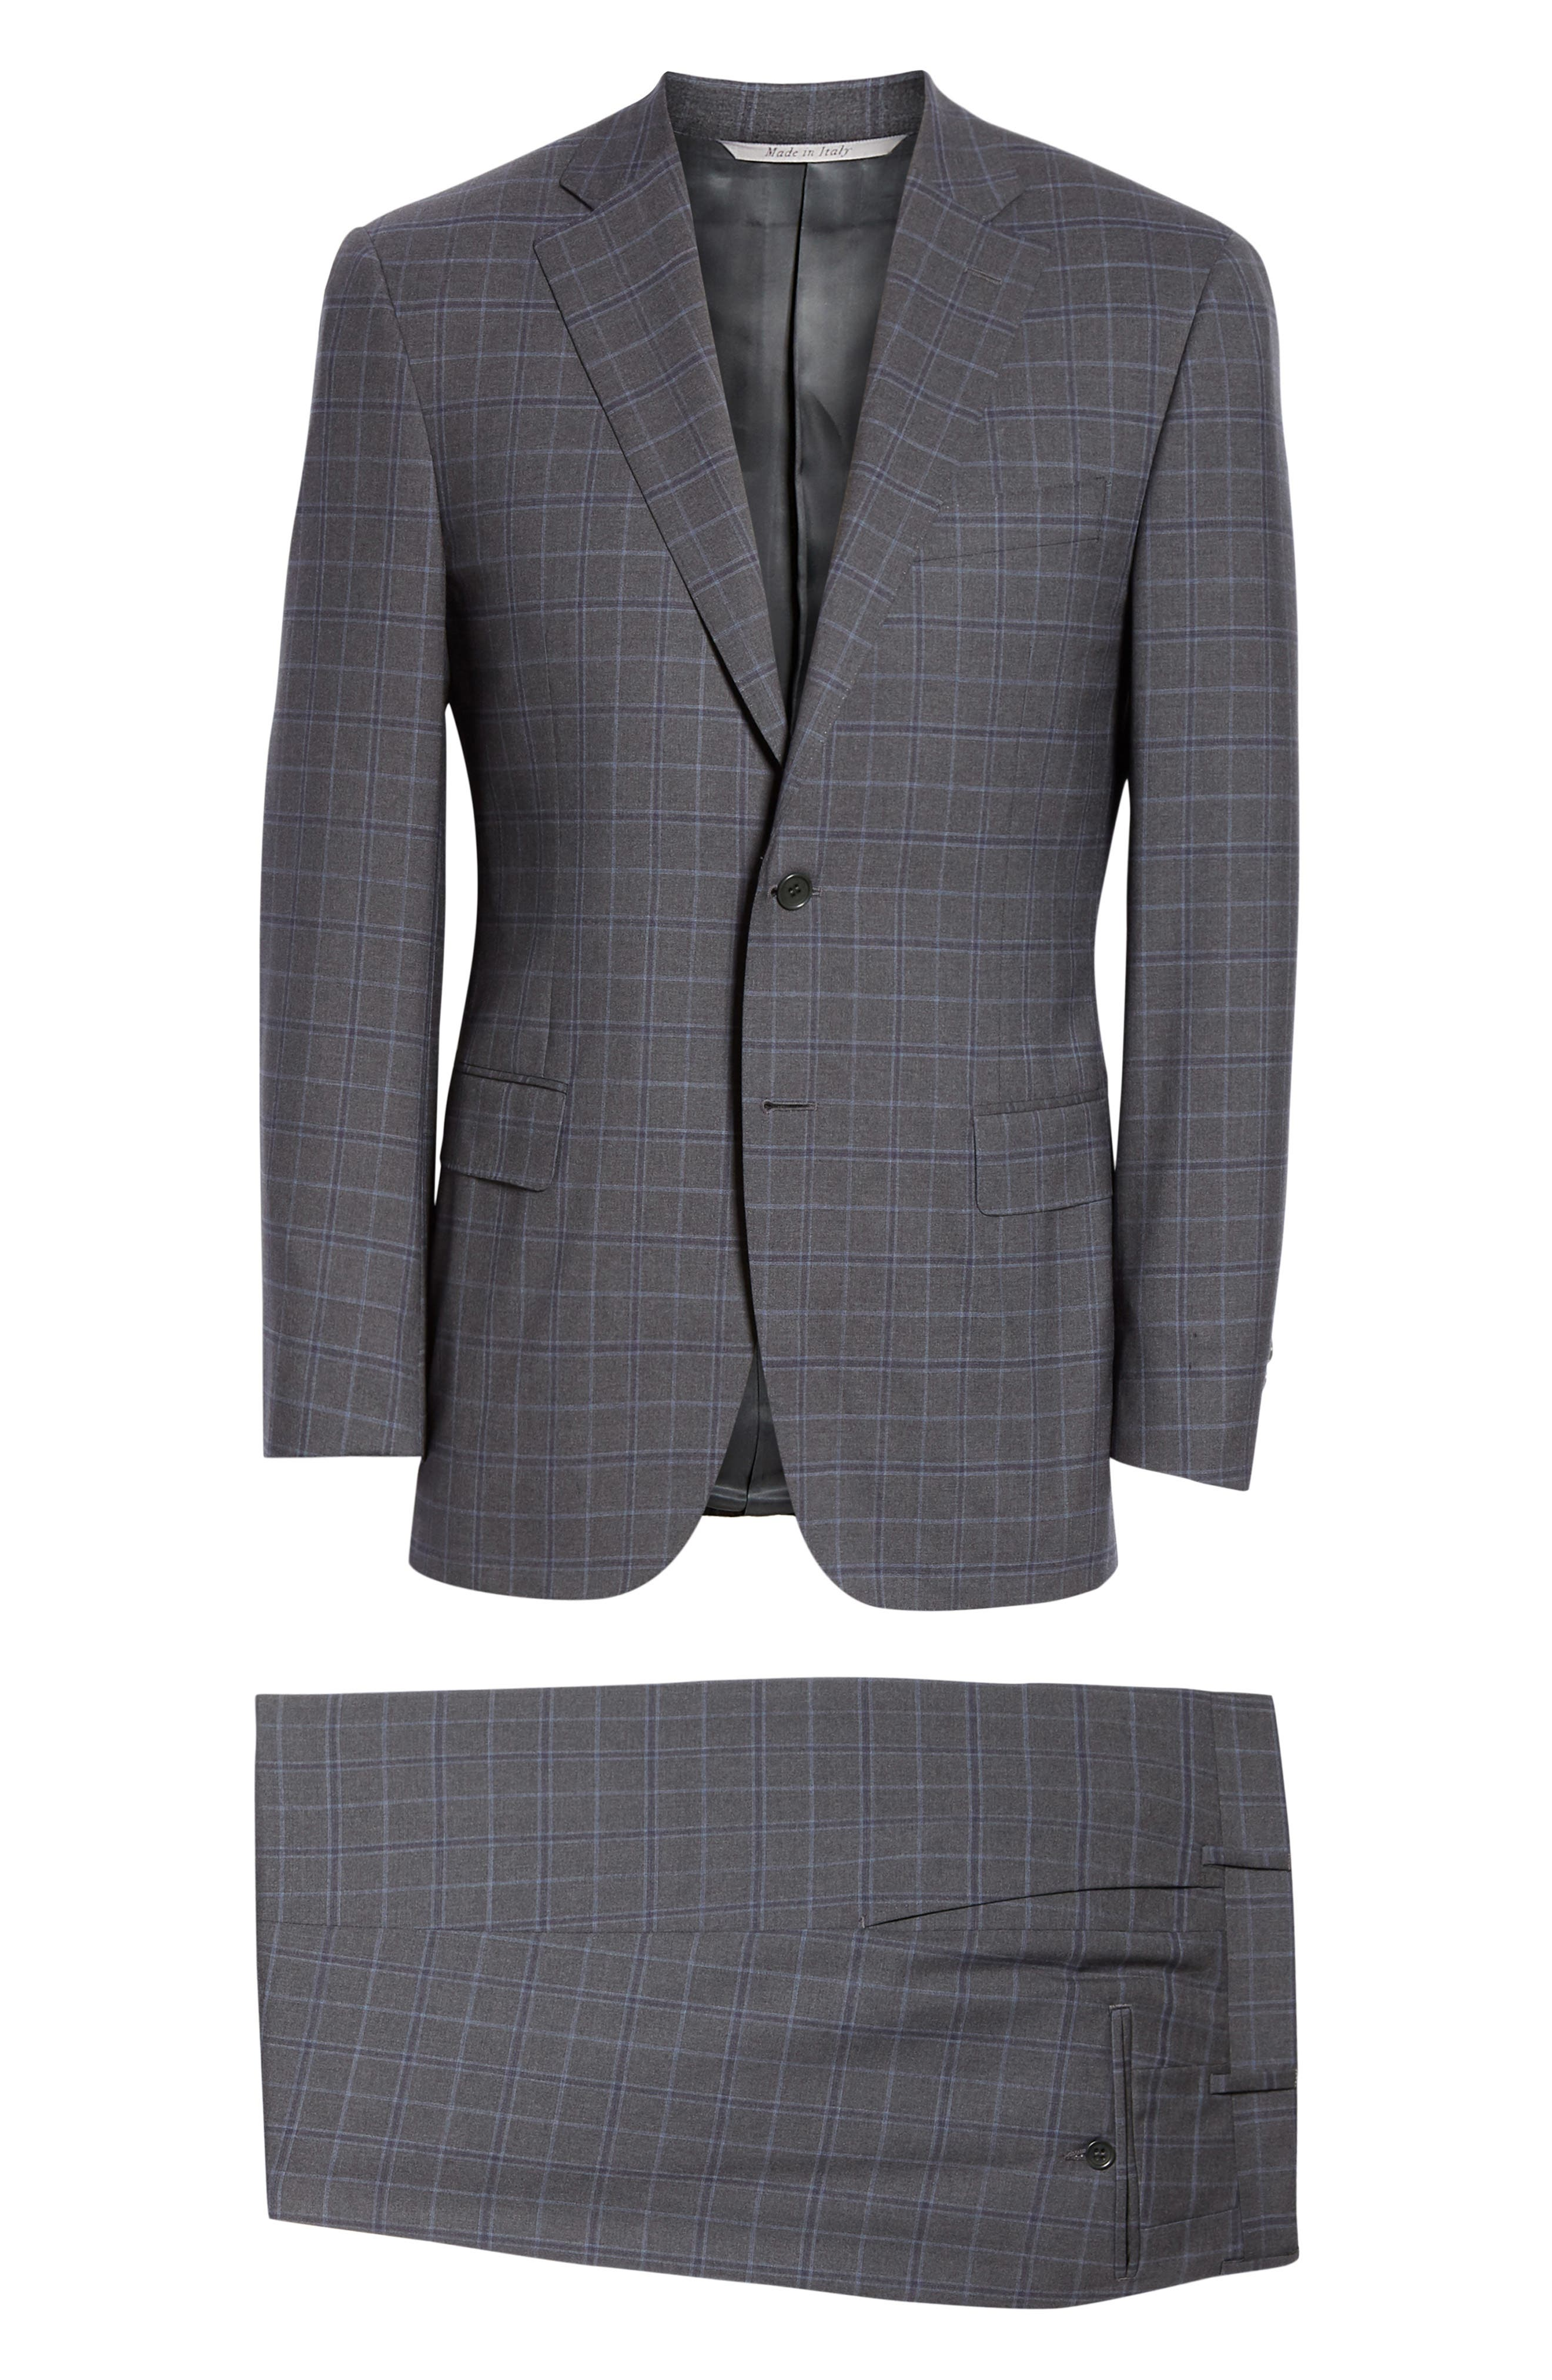 CANALI, Sienna Classic Fit Plaid Wool Suit, Alternate thumbnail 8, color, CHARCOAL